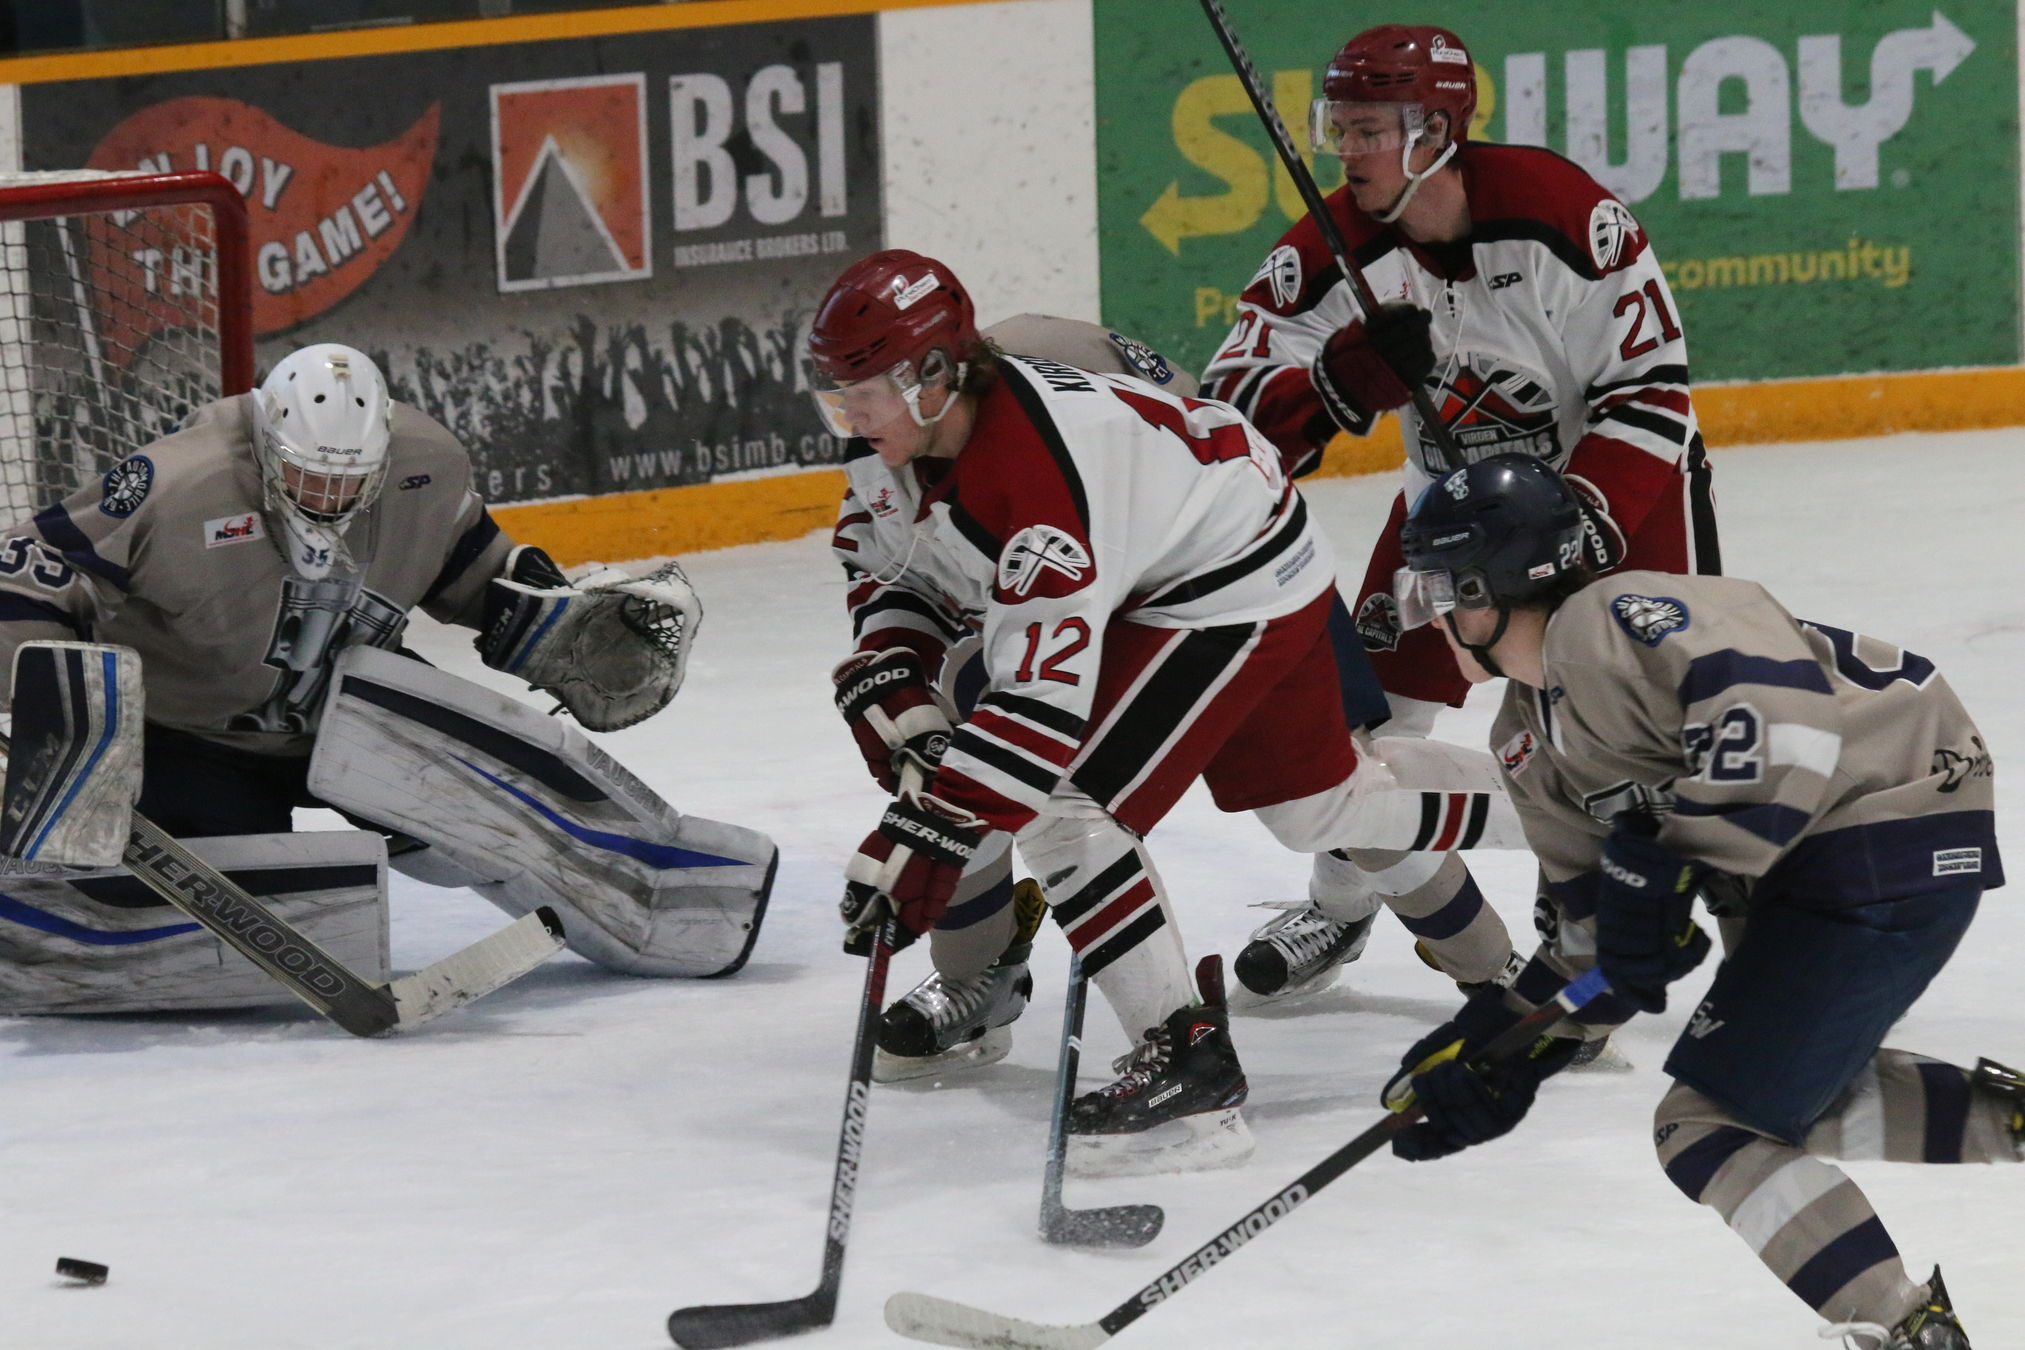 The surging Steinbach Pistons won their ninth straight game Wednesday night in Steinbach with a 6-1 victory over the Virden Oil Capitals.